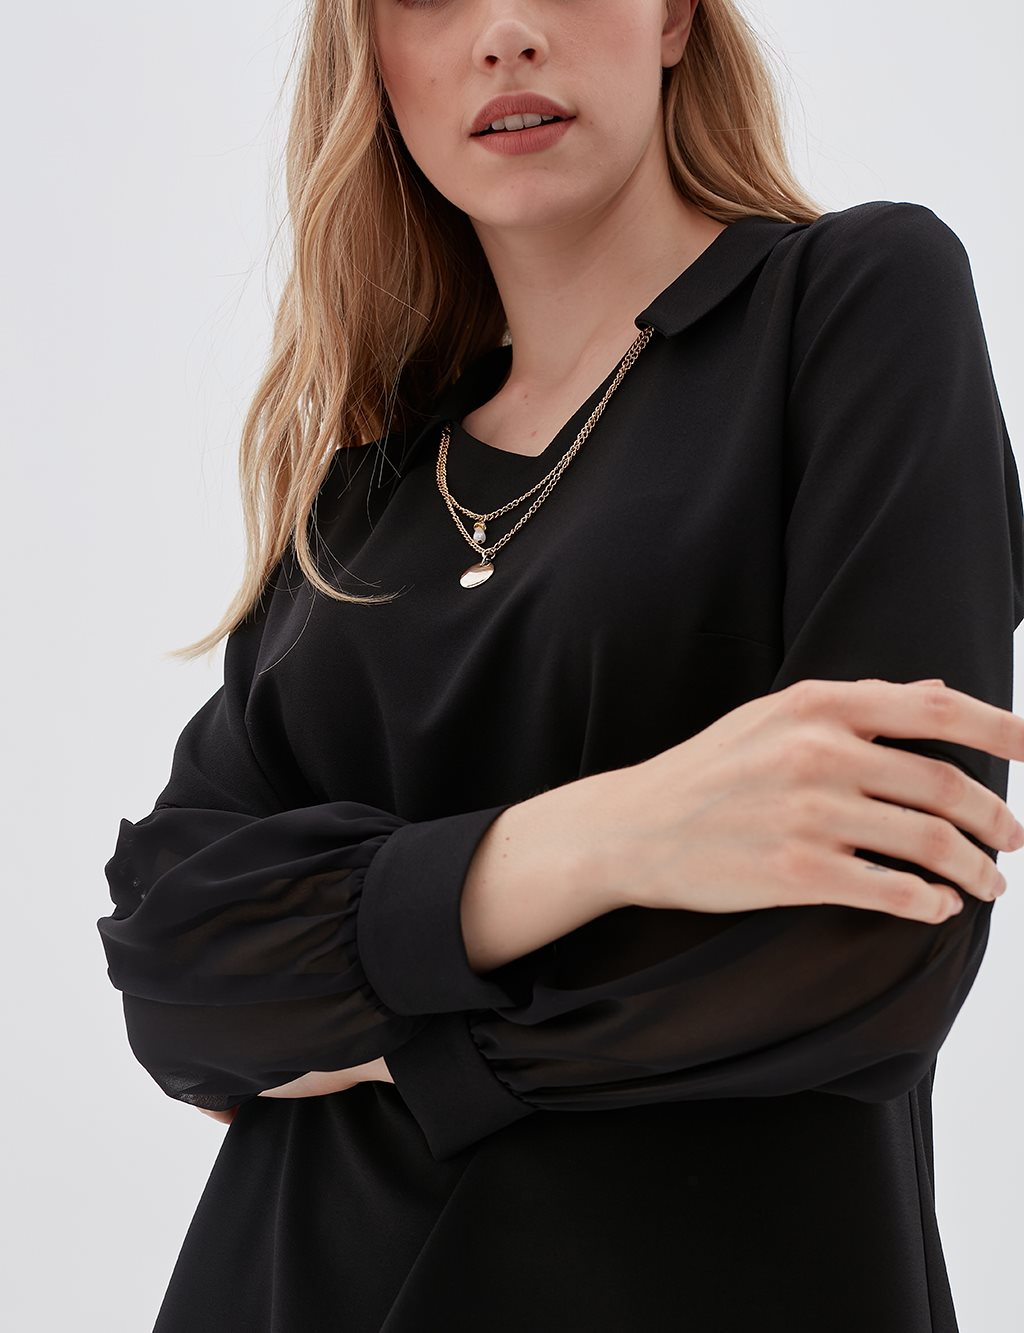 Chiffon Detailed Blouse With Necklace B20 10079 Black